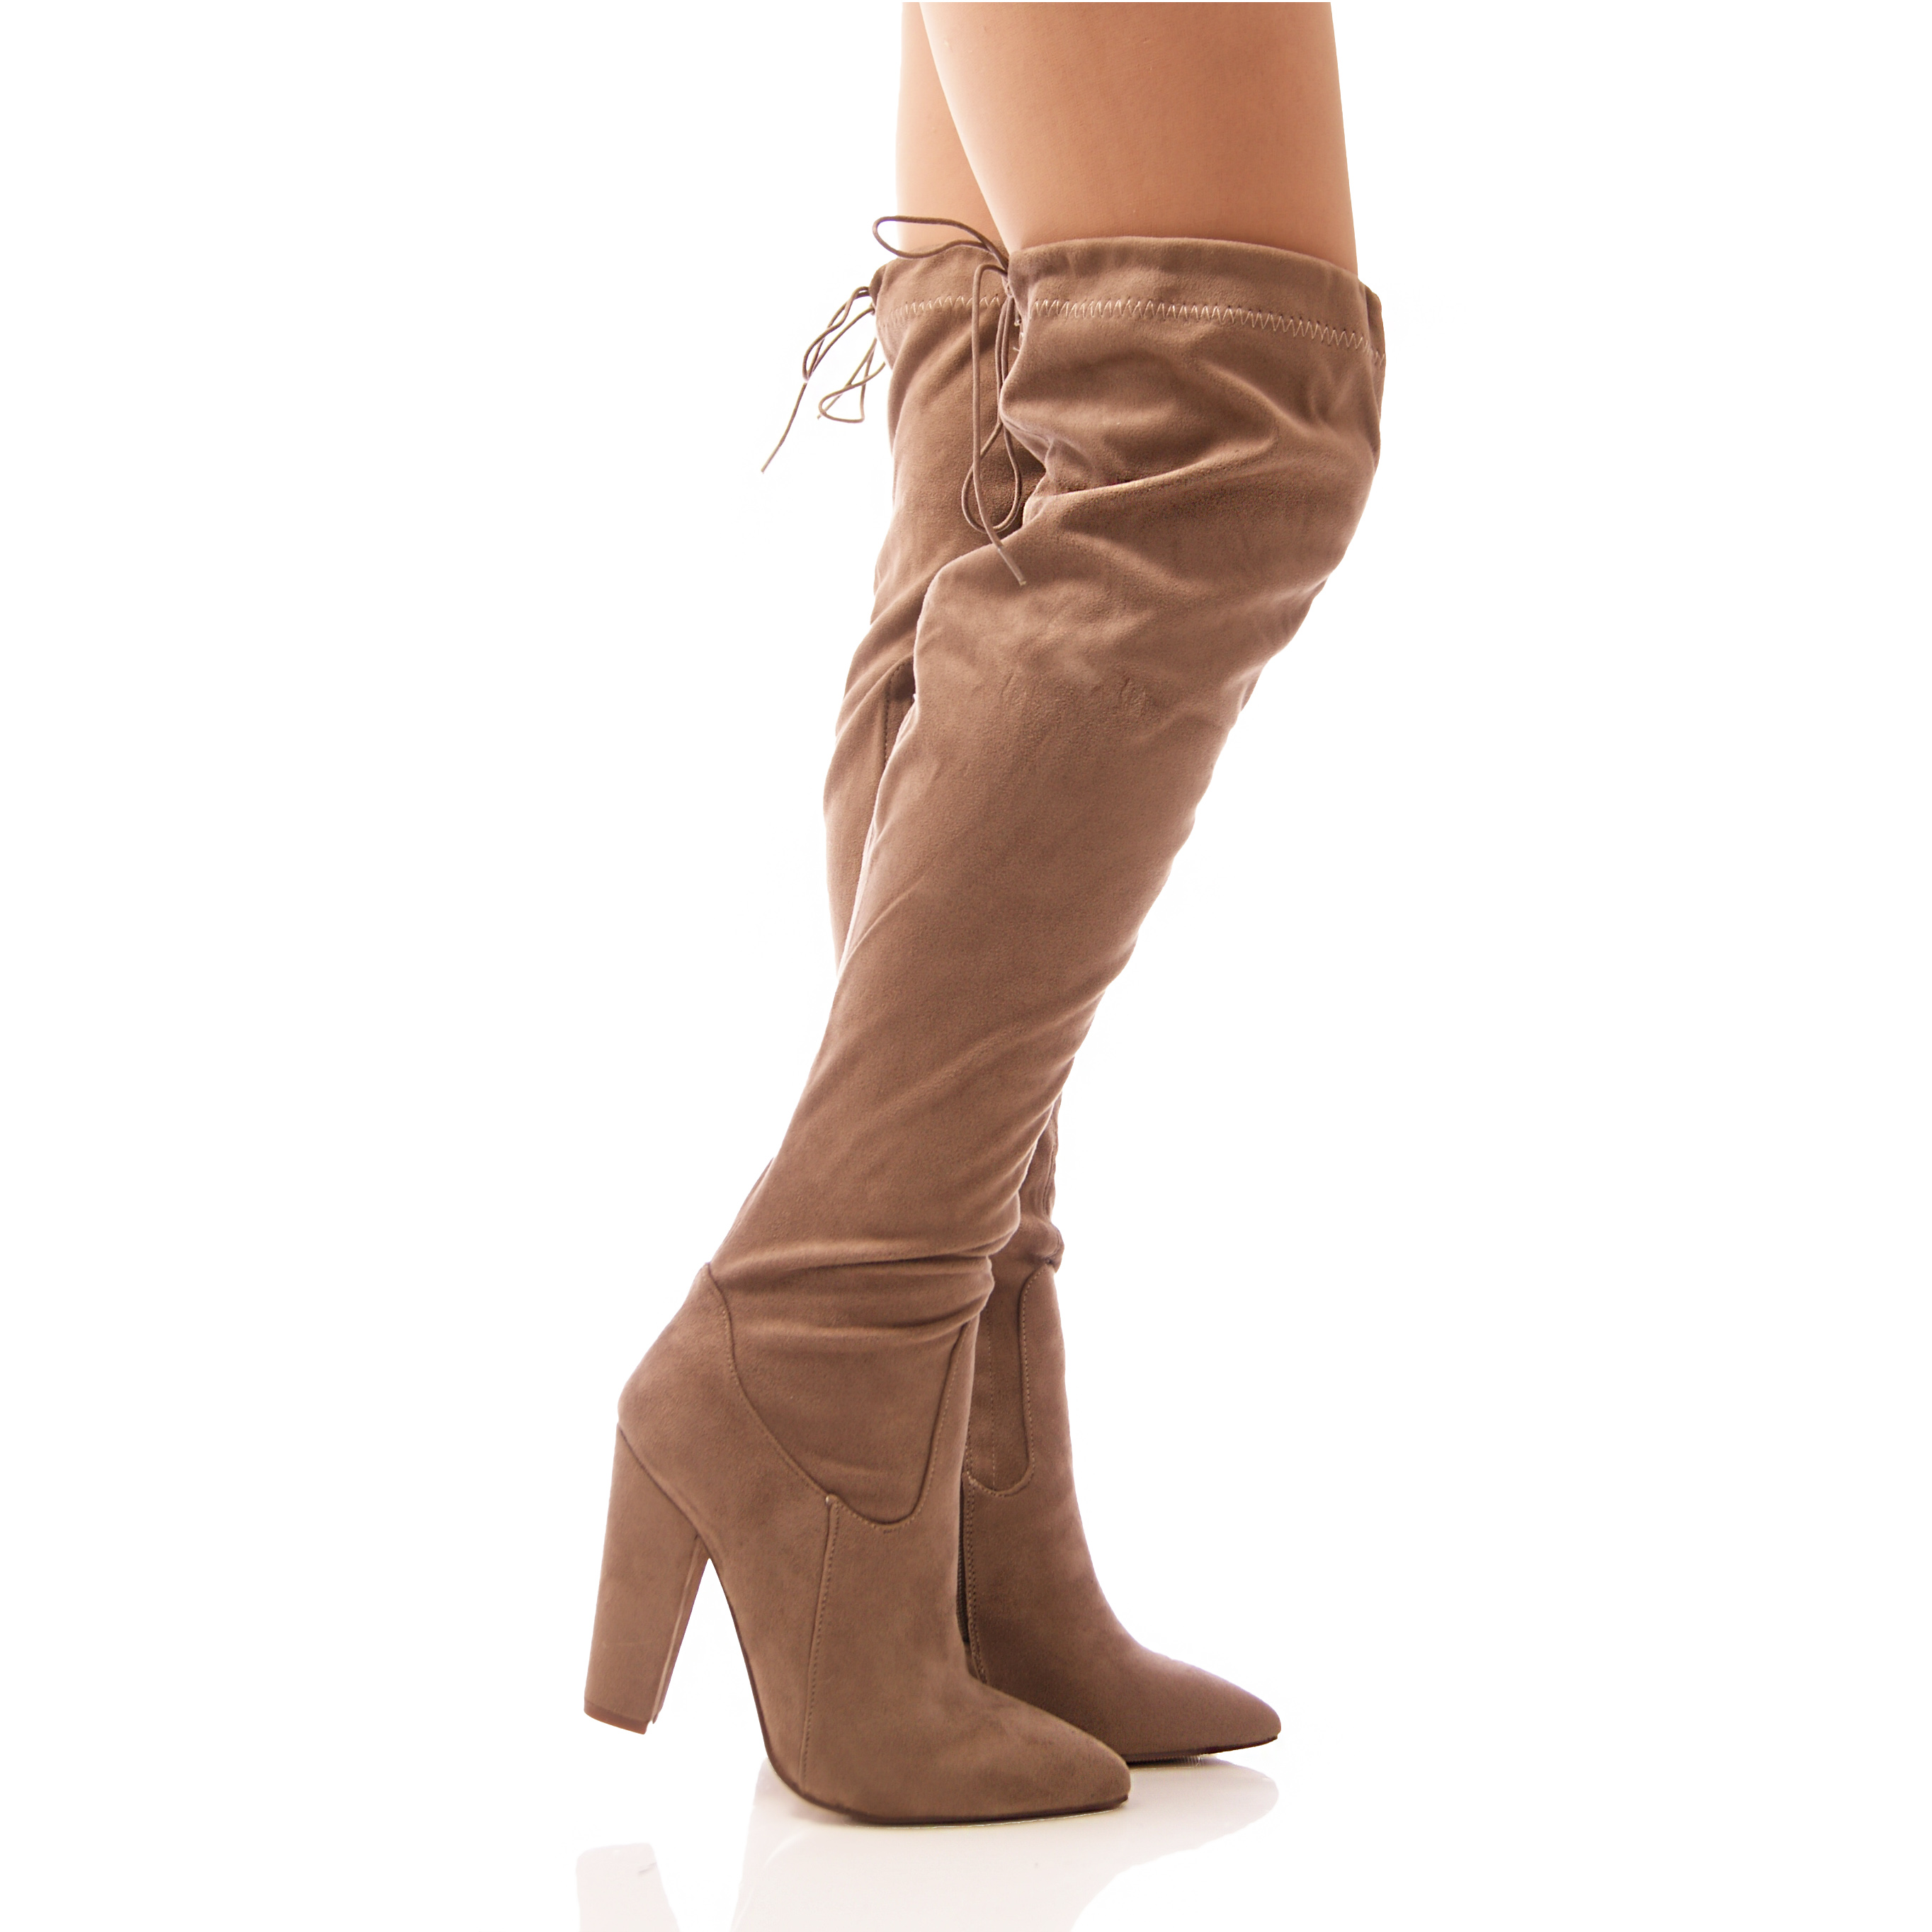 LADIES WOMENS OVER THE KNEE BOOTS LONG LEG BLOCK HEEL TIE